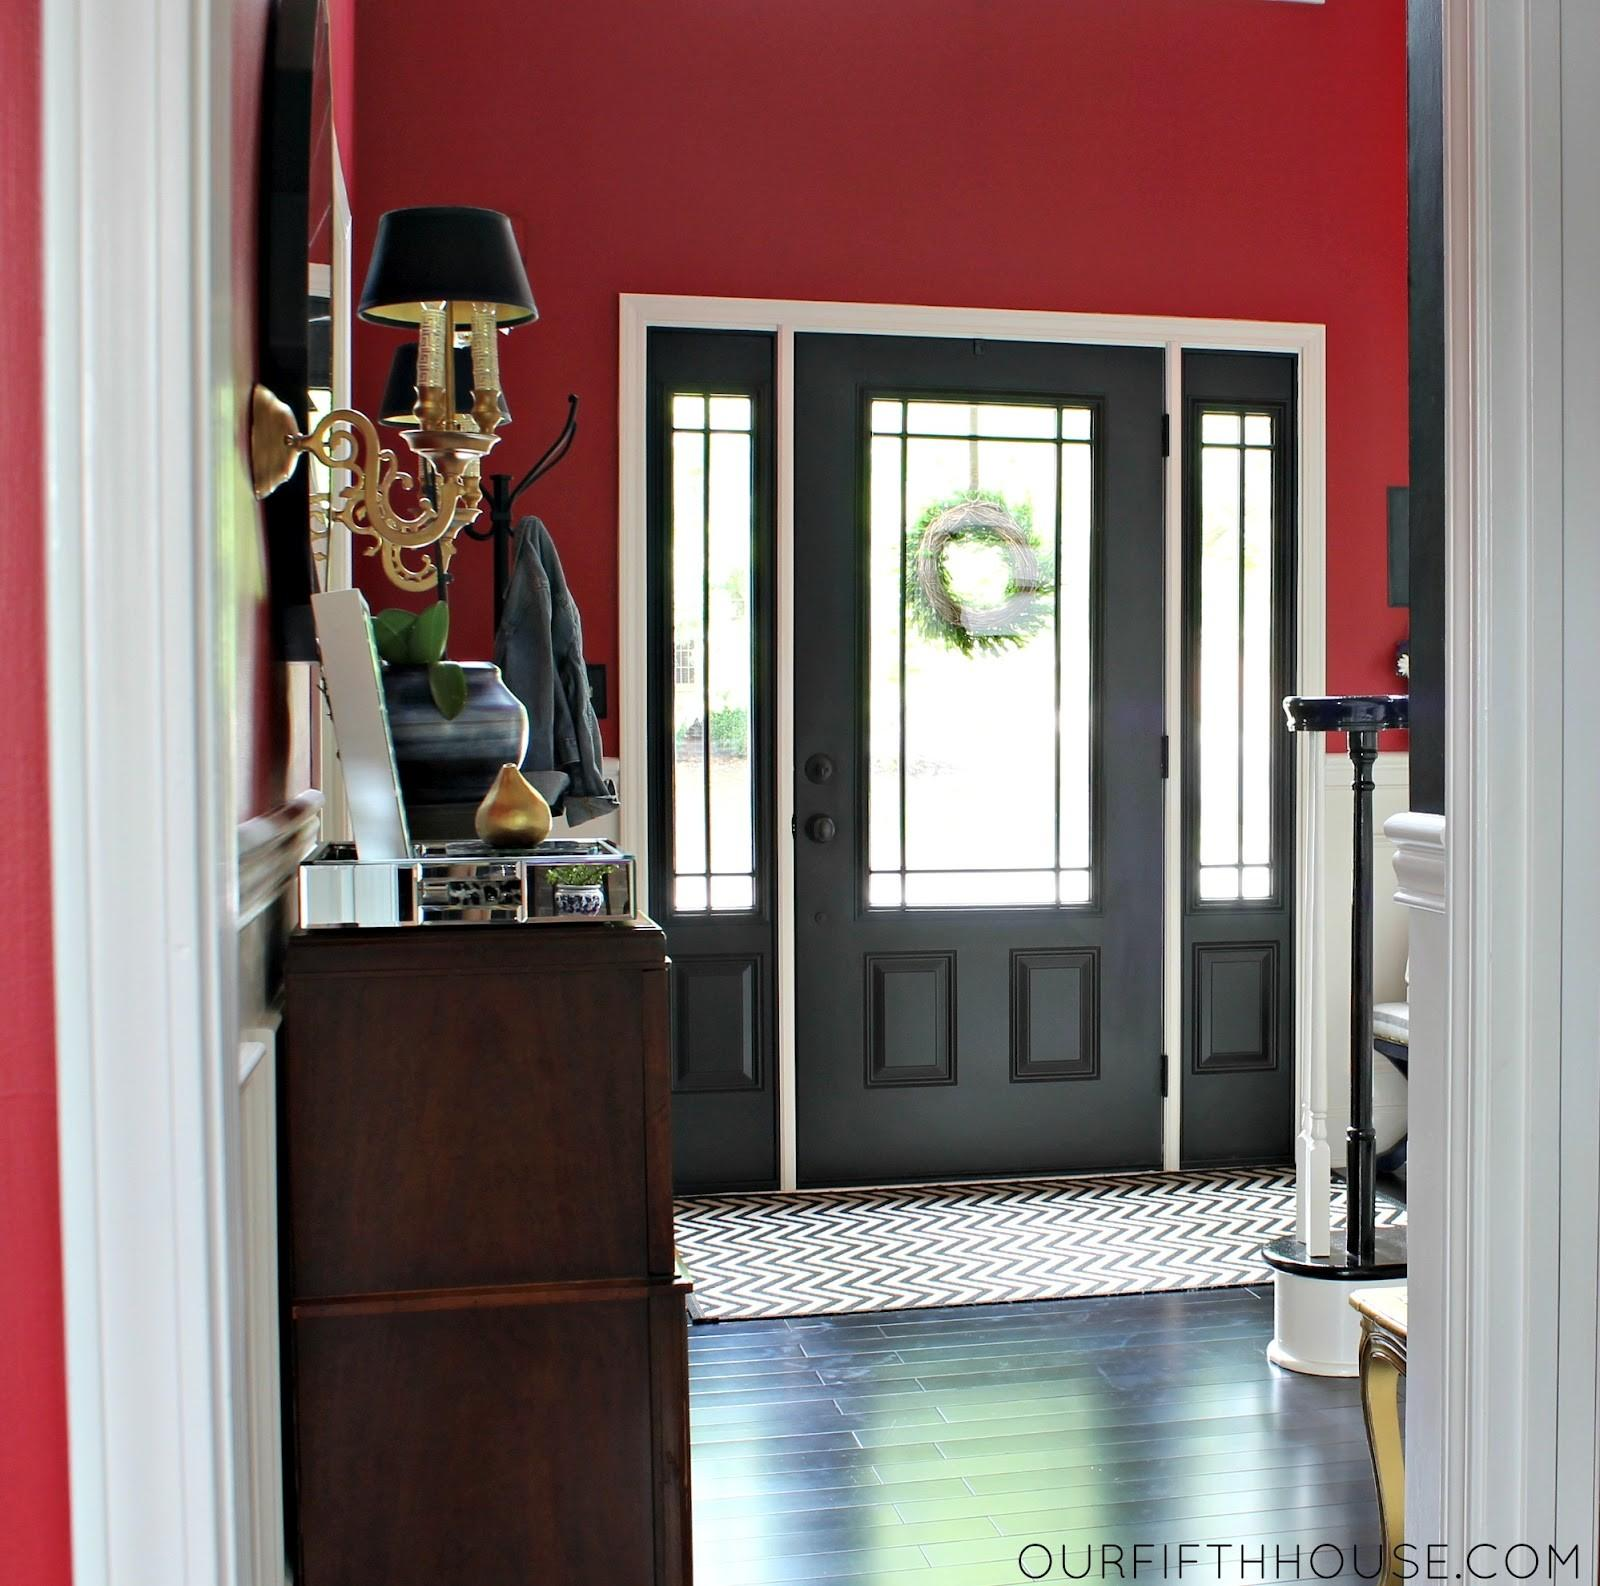 Home Remodeling Design May 2015